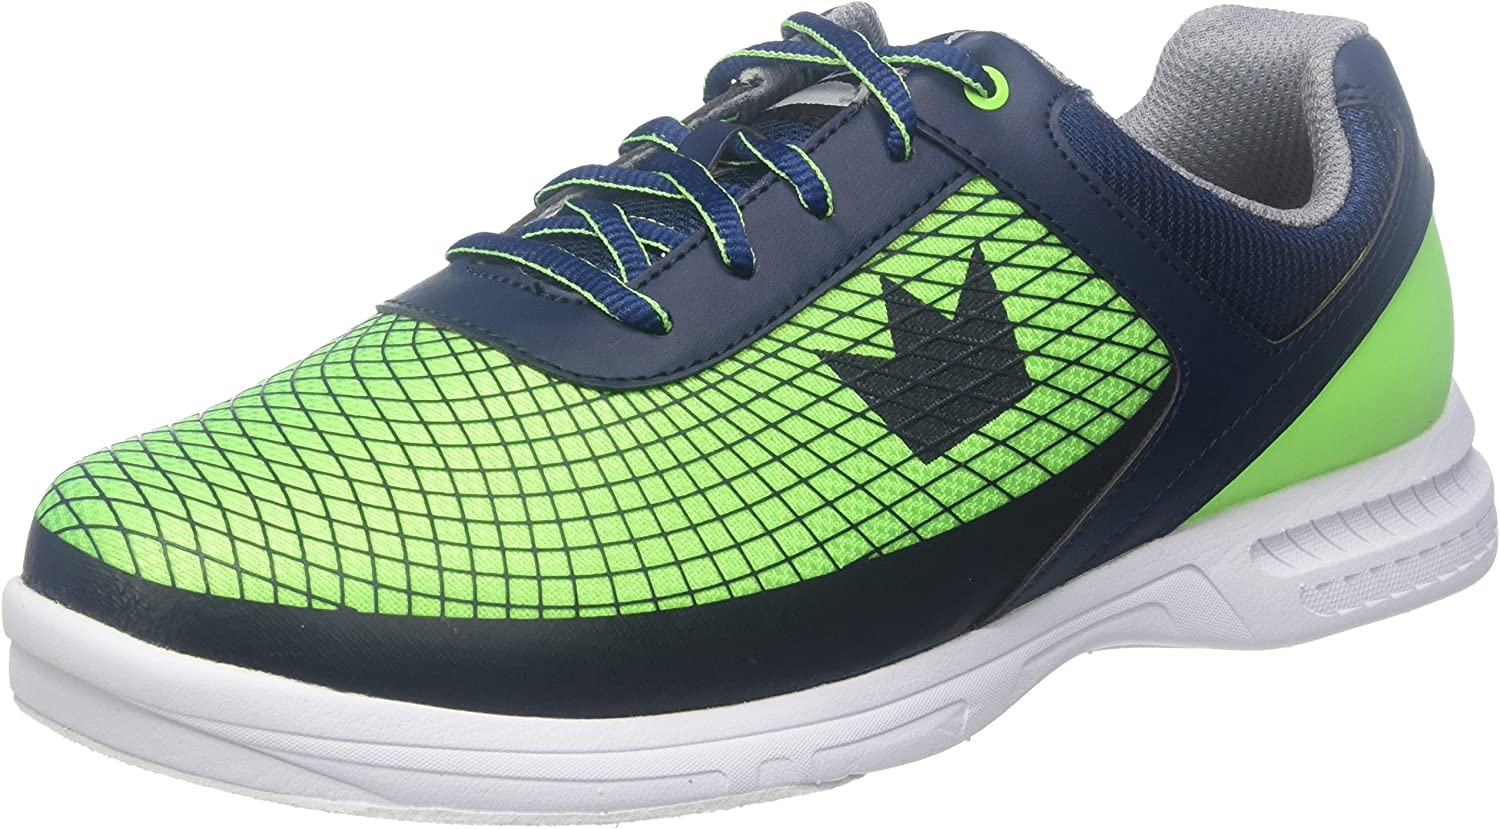 Brunswick Frenzy Mens Bowling shoes Navy Green, 11.5